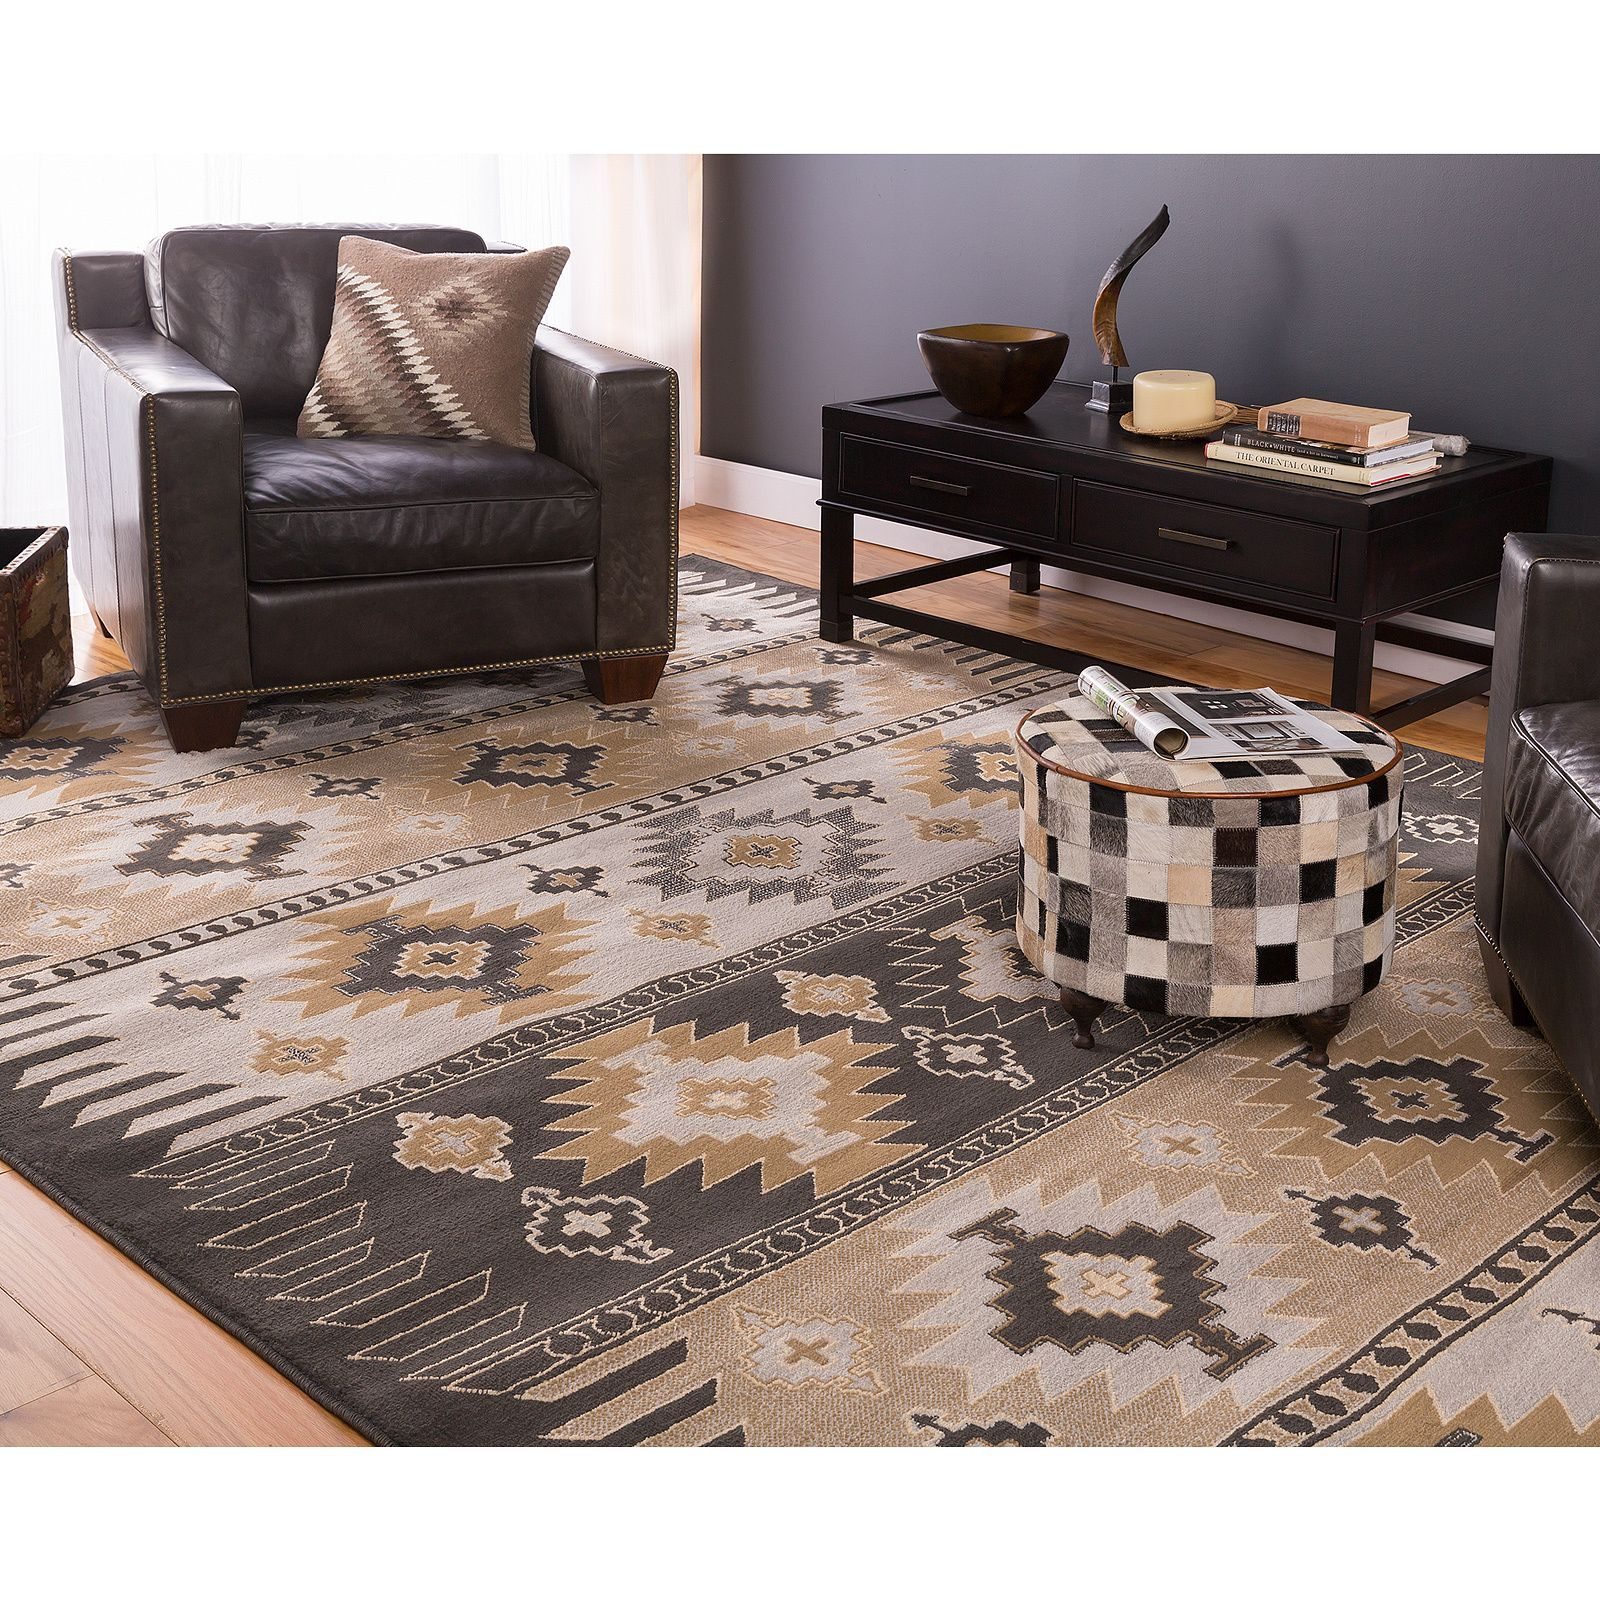 Overstock Com Online Shopping Bedding Furniture Electronics Jewelry Clothing More Black Area Rugs Home Decor Home